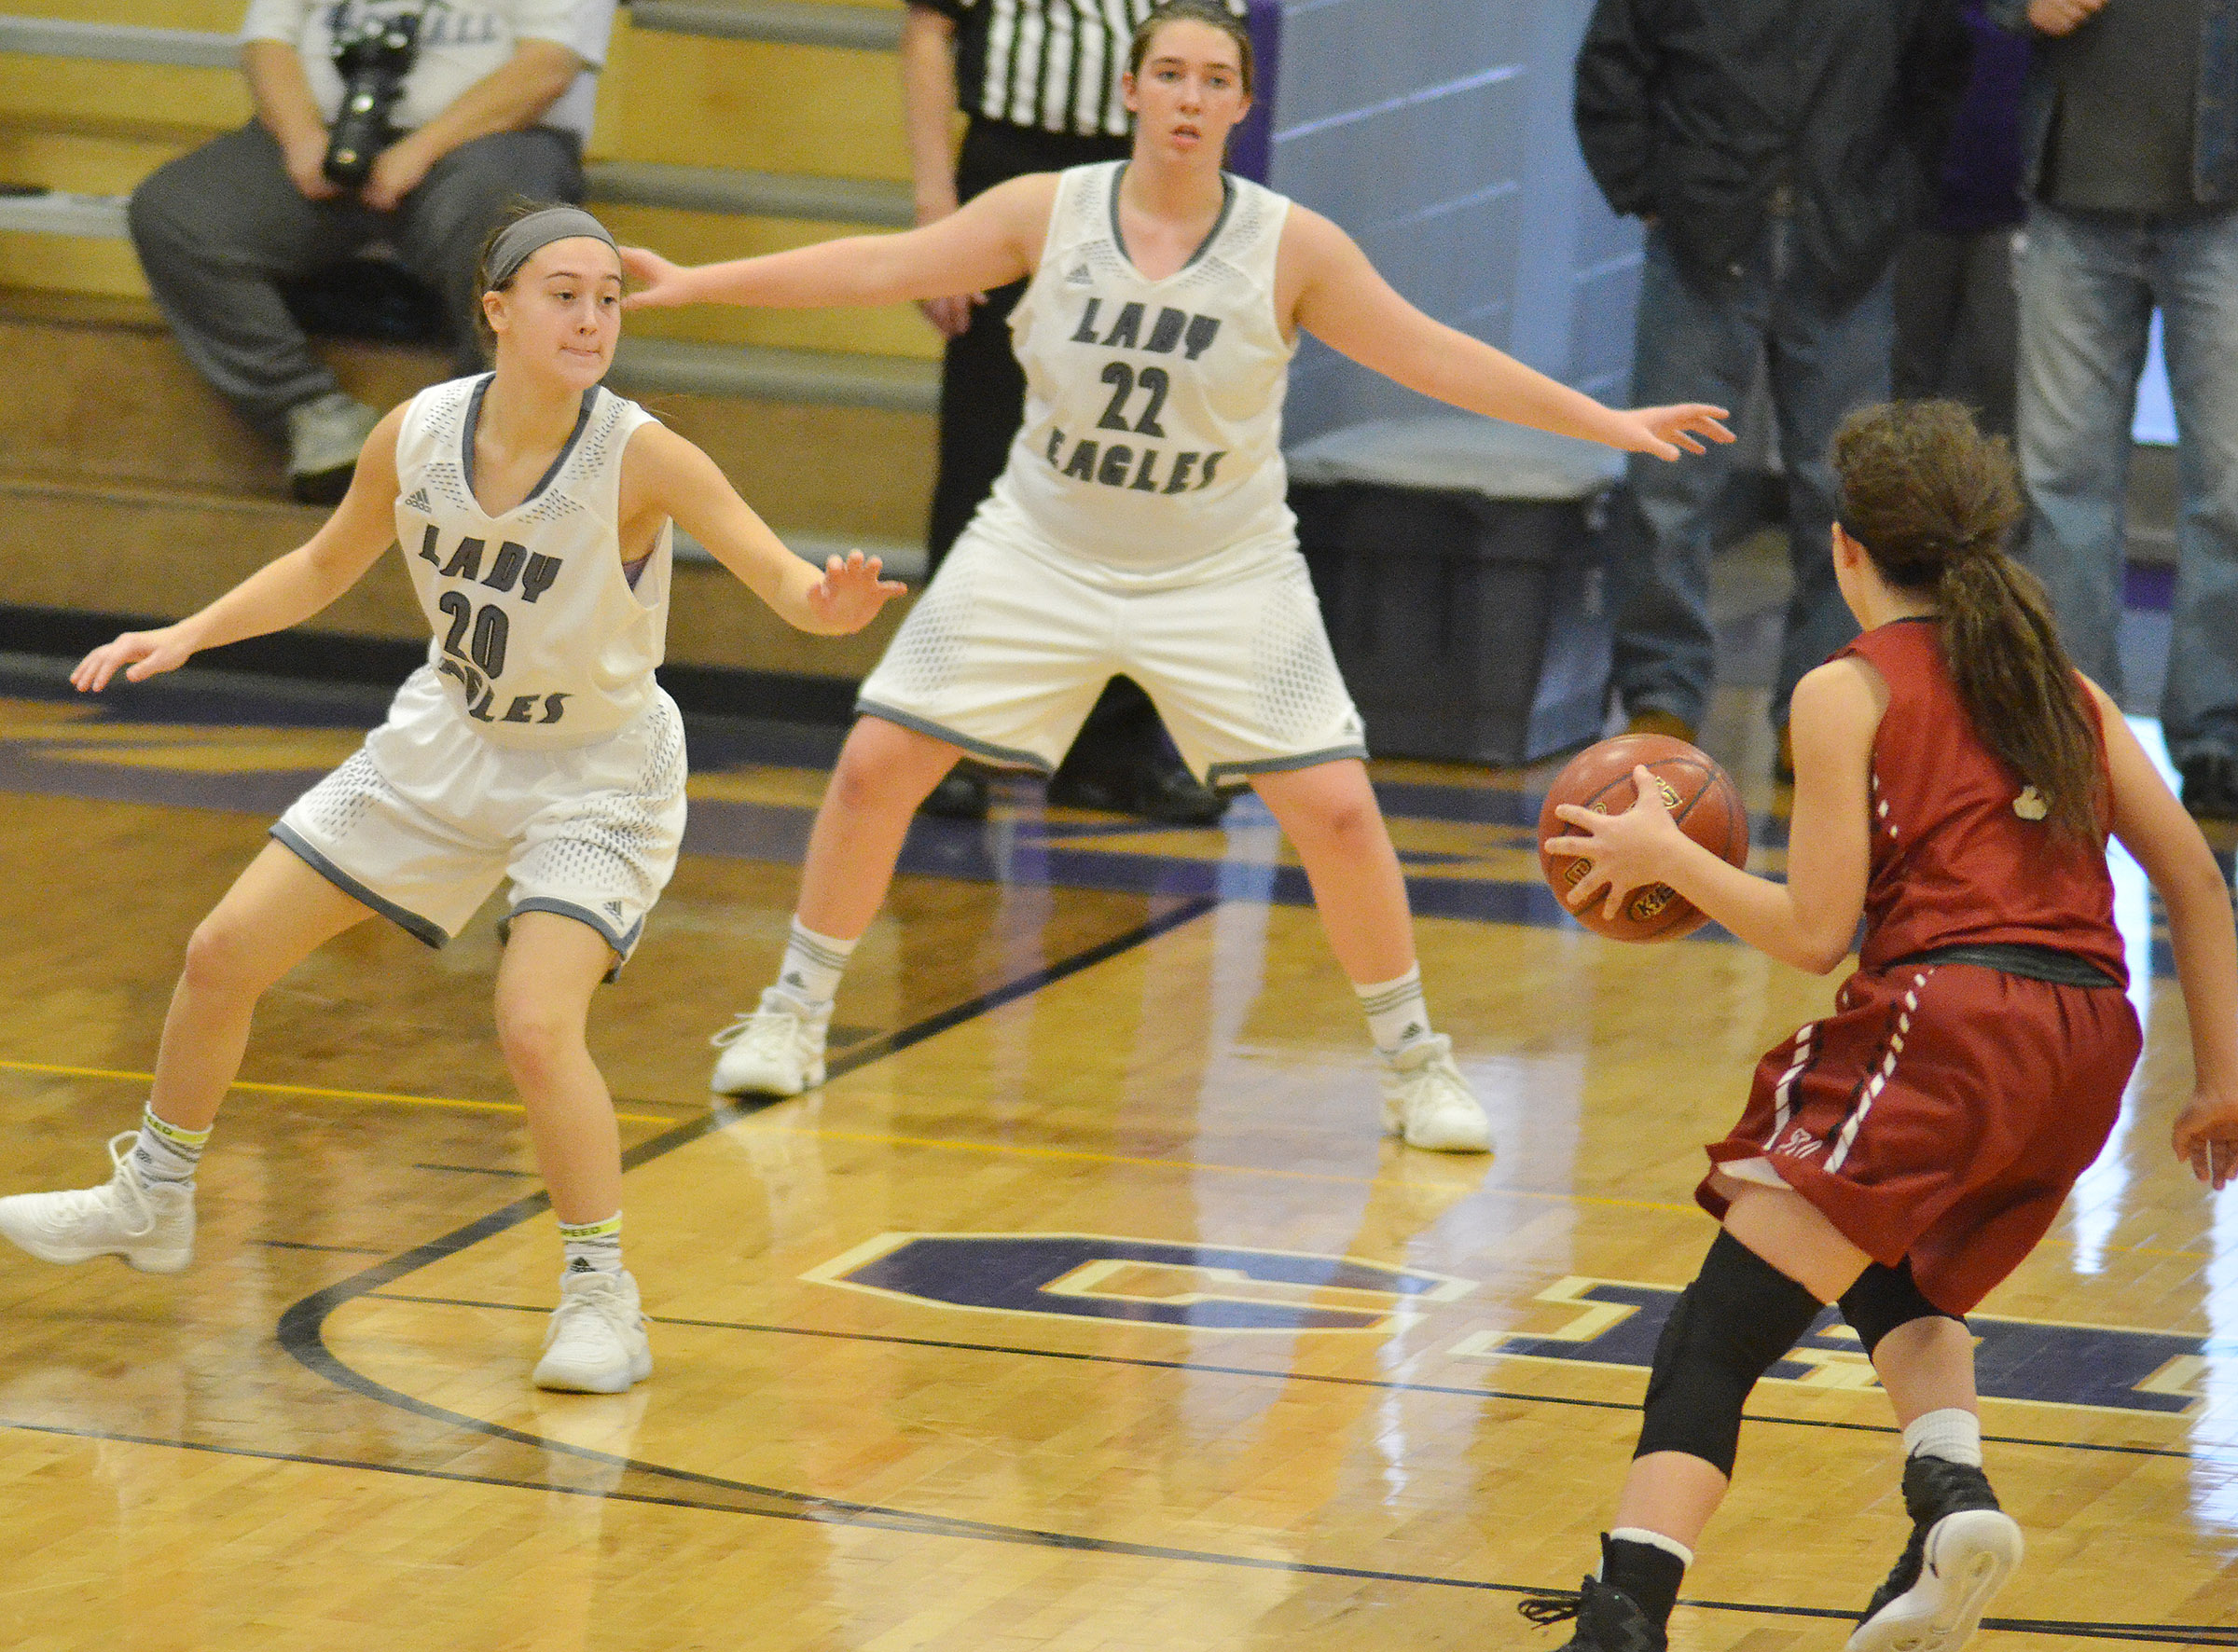 CHS sophomore Bailey Thompson, at left, and freshman Abi Wiedewitsch play defense.